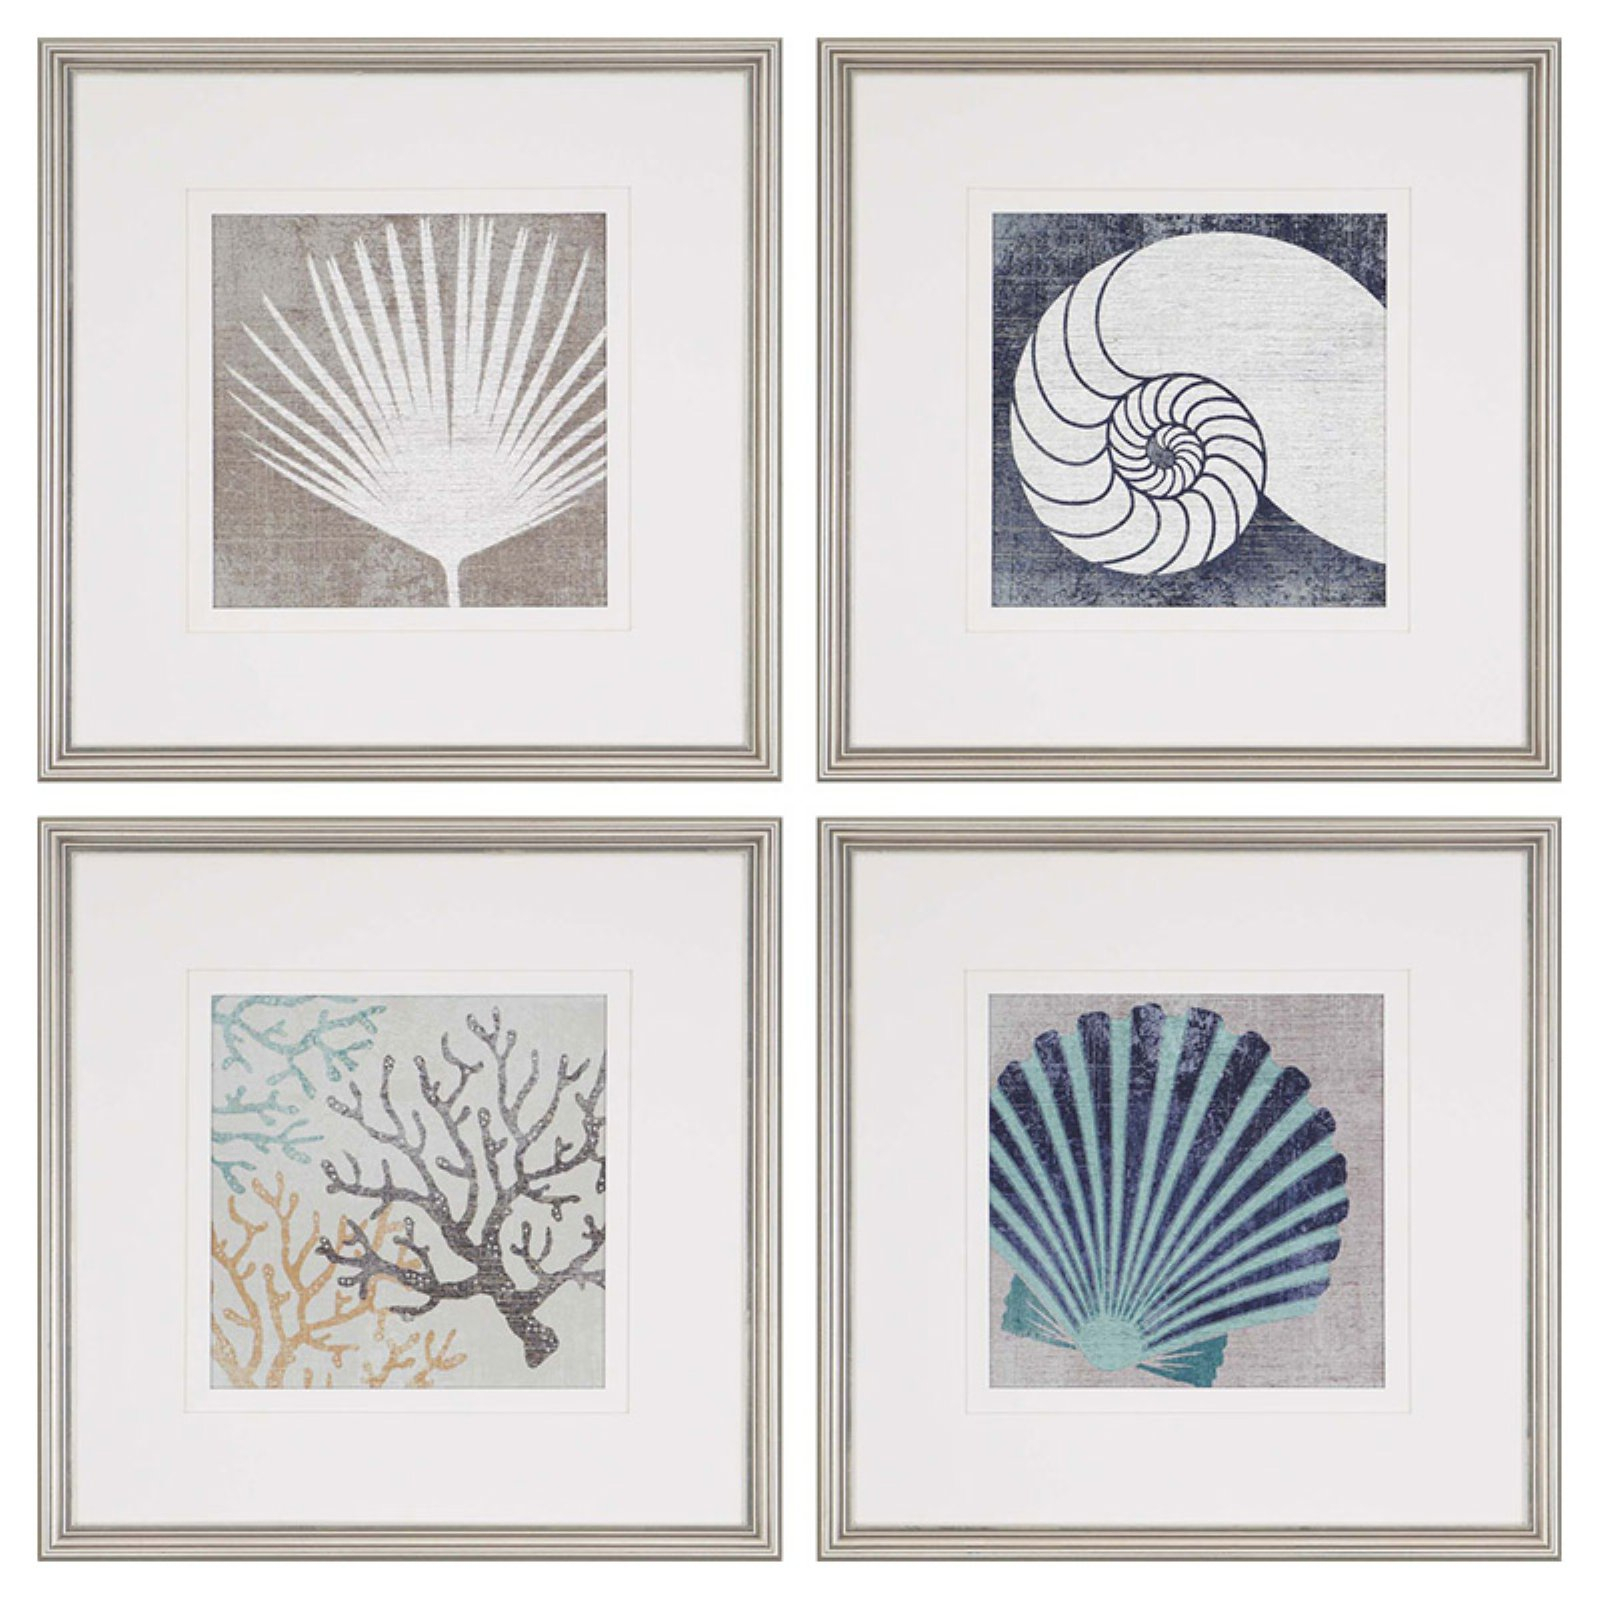 Paragon Coastal Ii Framed Wall Art – Set Of 4 In 2019 For 4 Piece Metal Wall Decor Sets (View 13 of 30)